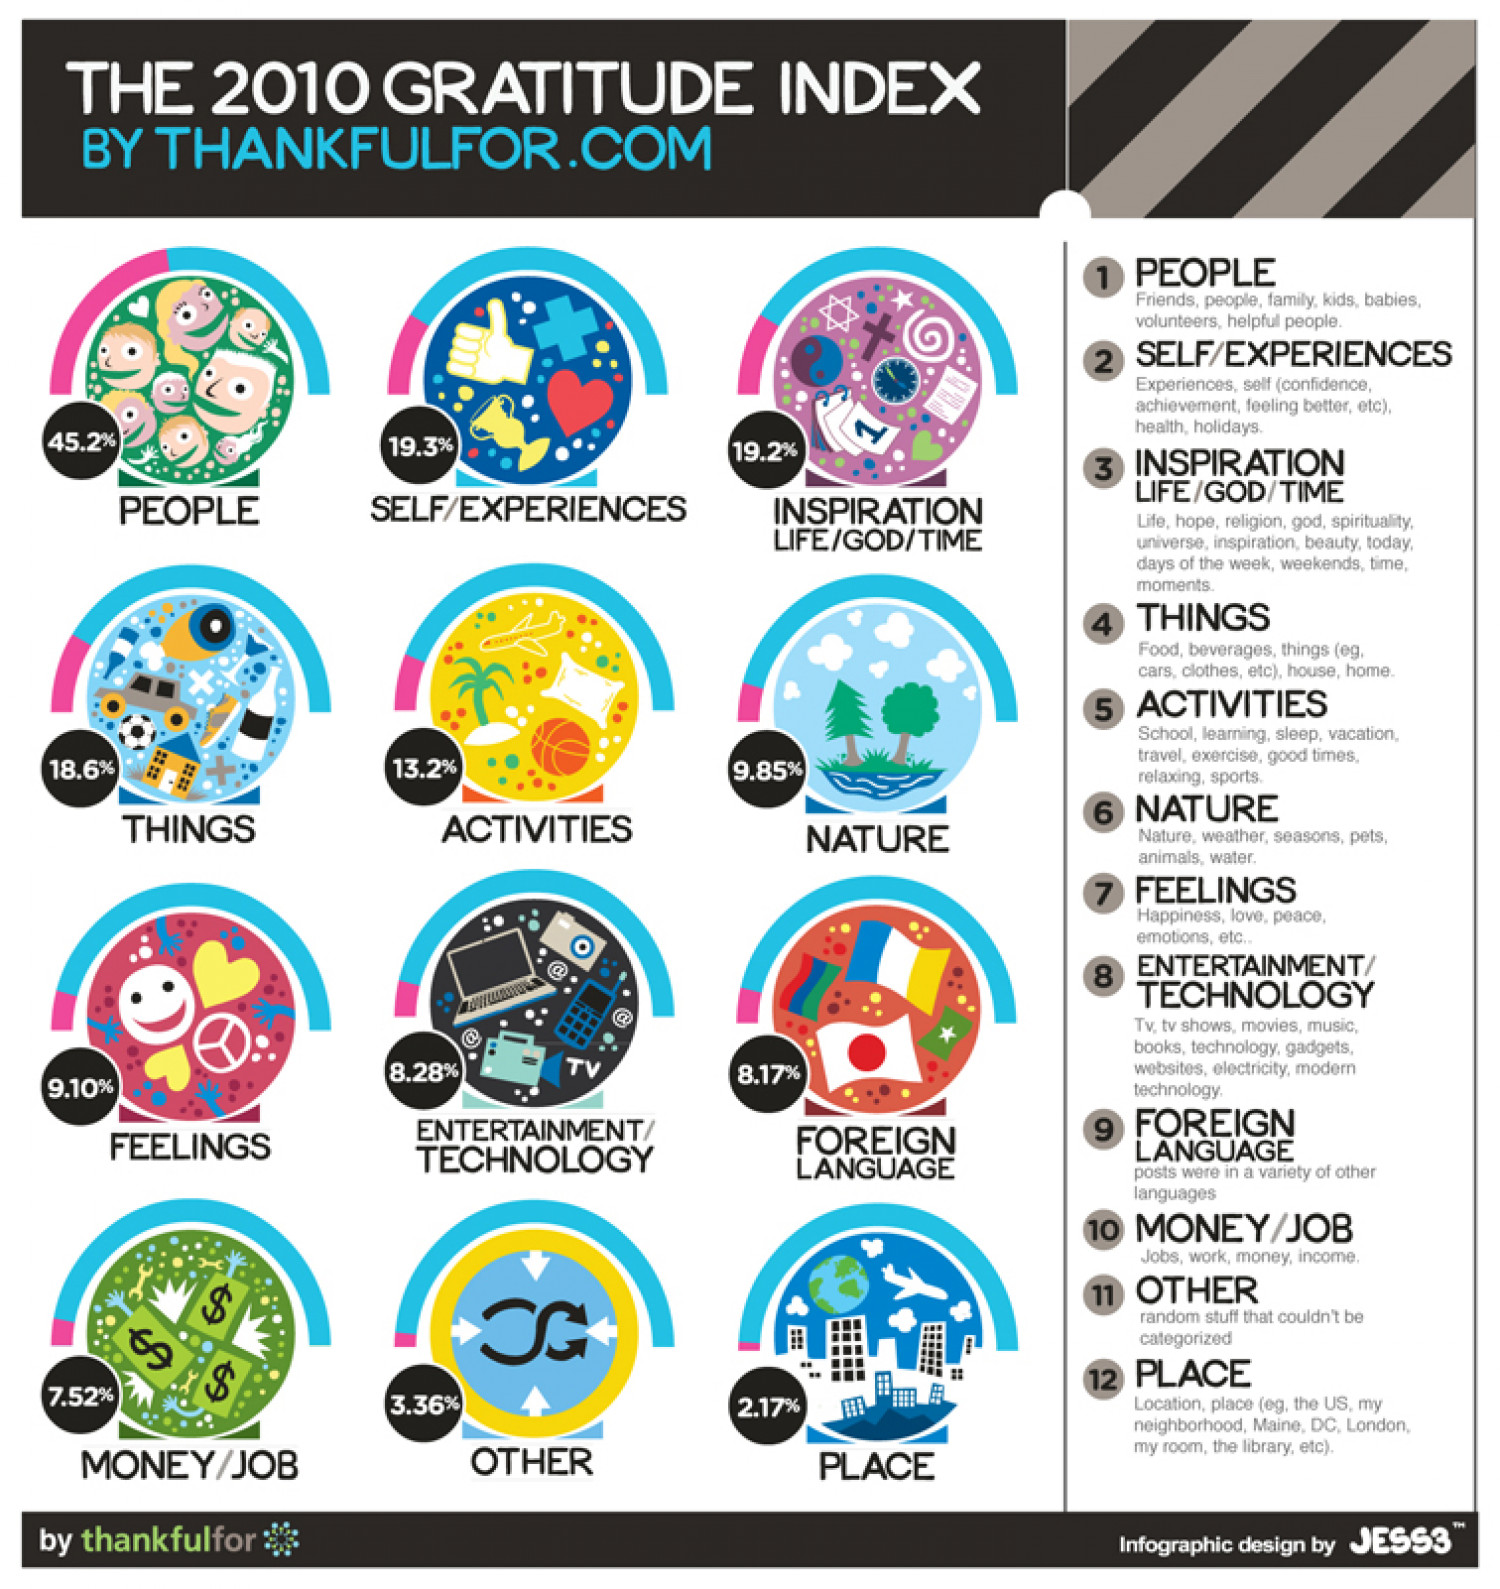 Thankfulfor.com 2010 Gratitude Index Infographic